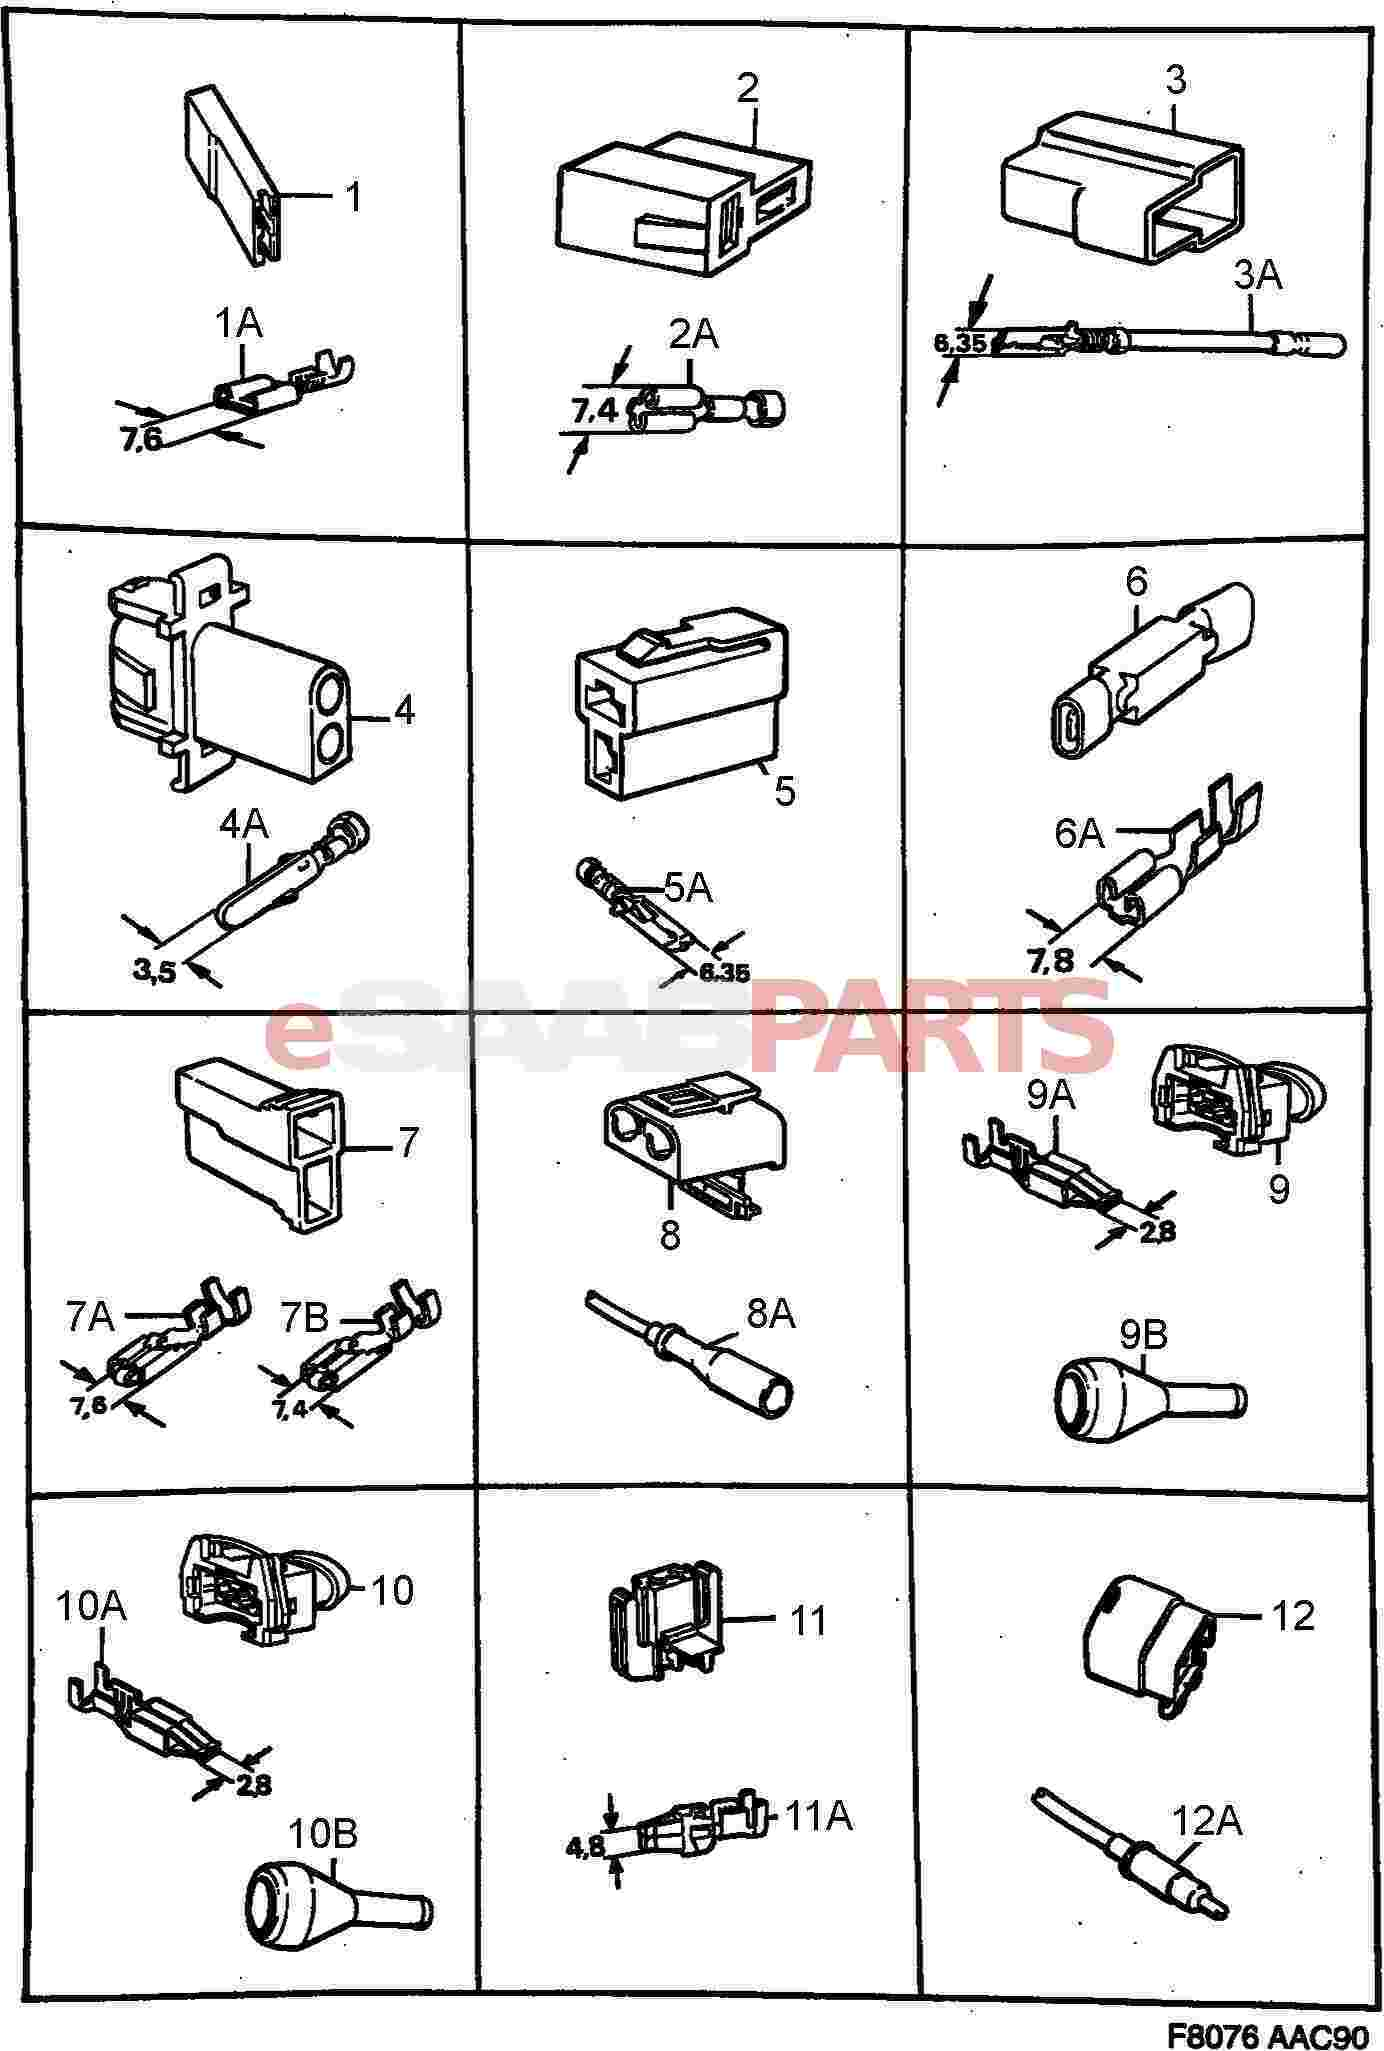 hight resolution of esaabparts com saab 900 electrical connector parts connectors all types connector housing etc